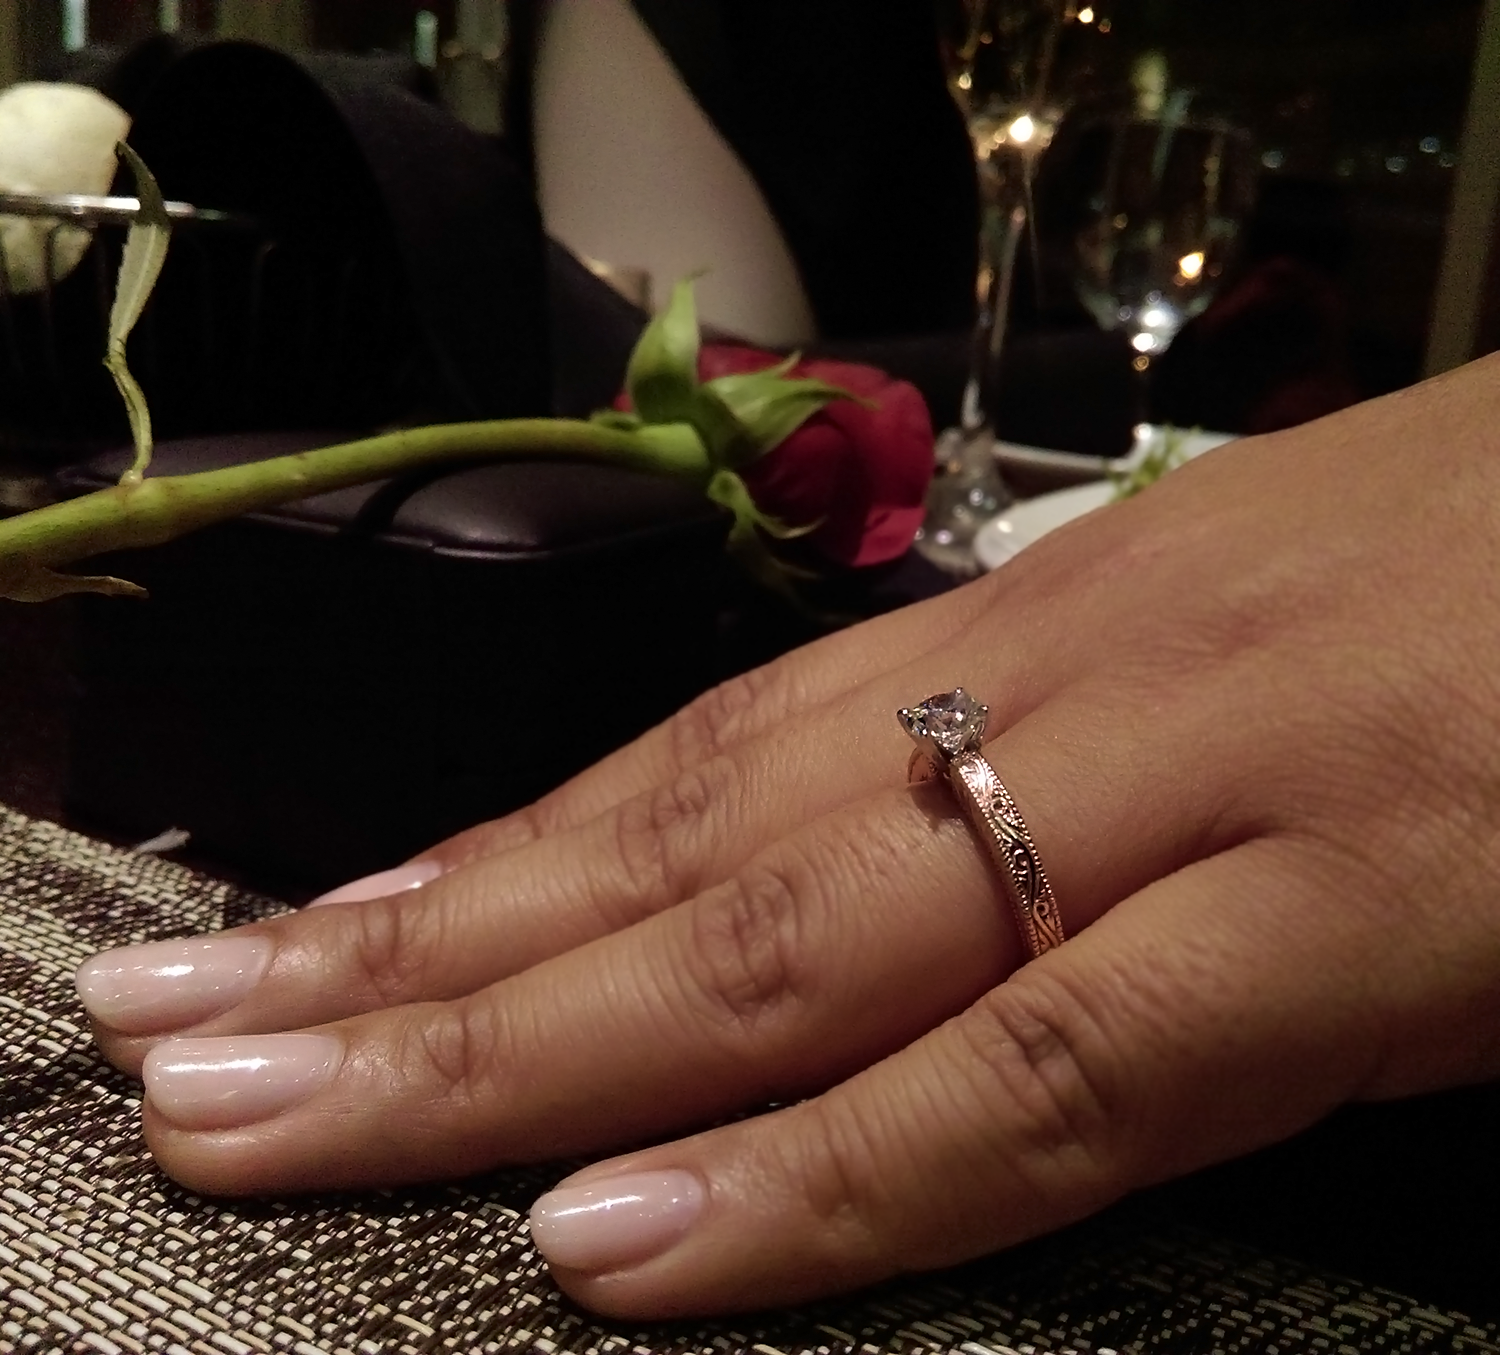 Justin-and-Minna-Celebrity-Engagement---The-Victorian-Engagement-Ring